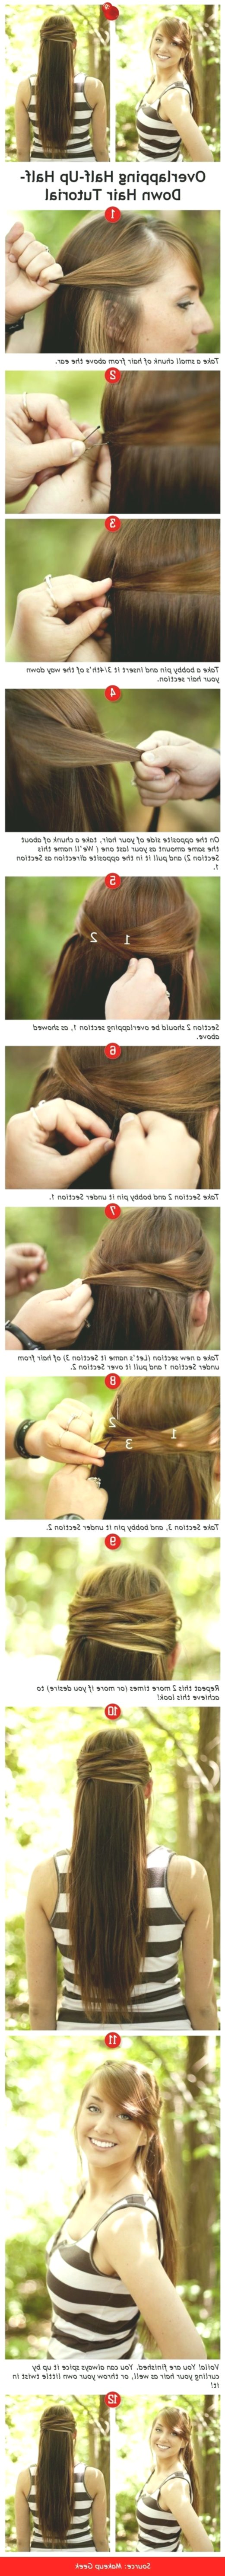 best of fast hairstyles for long hair guide online Elegant Fast Hairstyles For Long Hair Instructions Collection